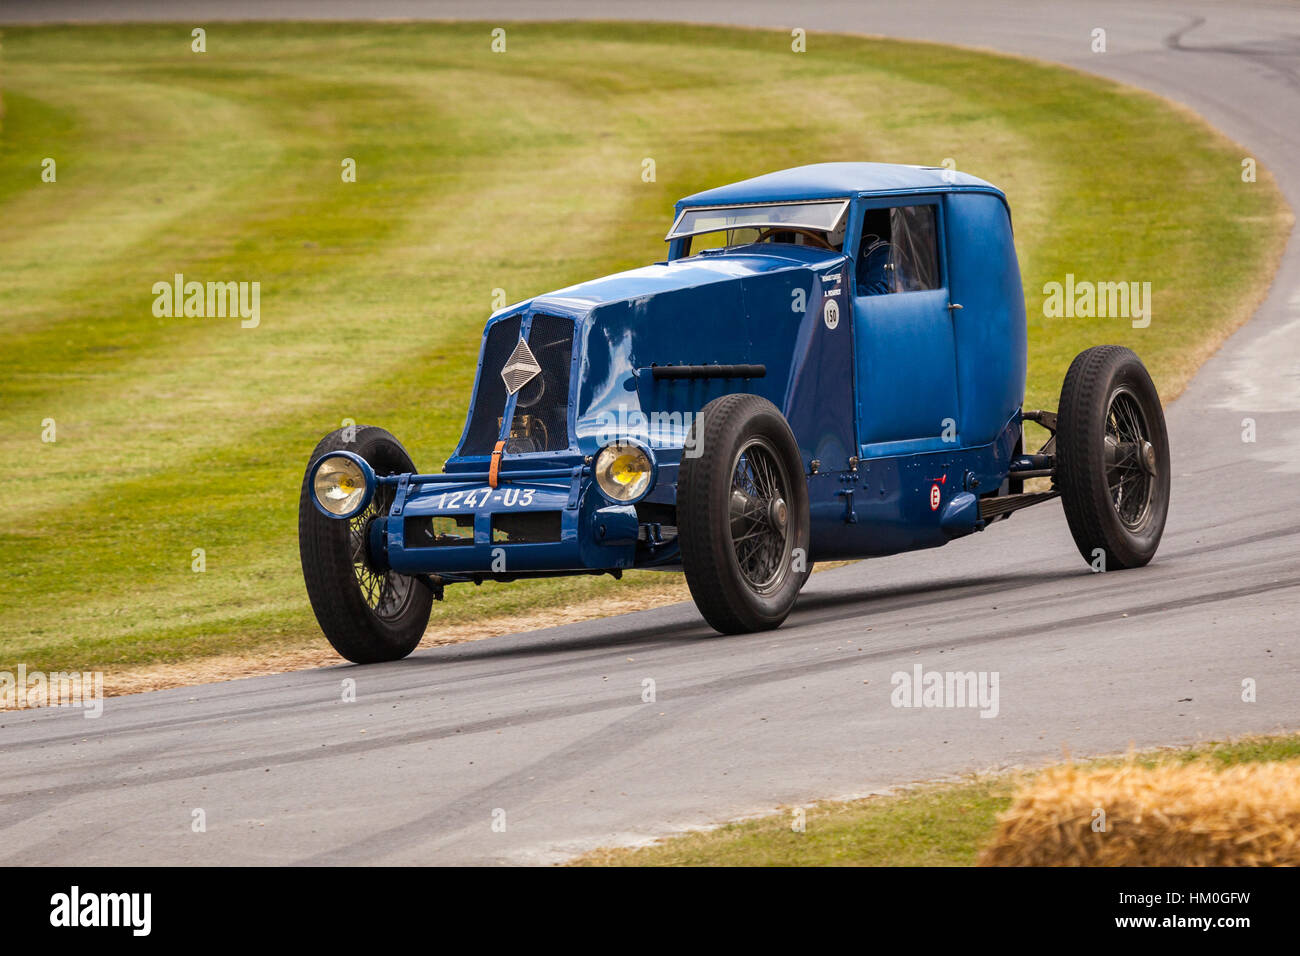 Montlhery Coupe historic racing car at Goodwood Festival of Speed 2014 - Stock Image